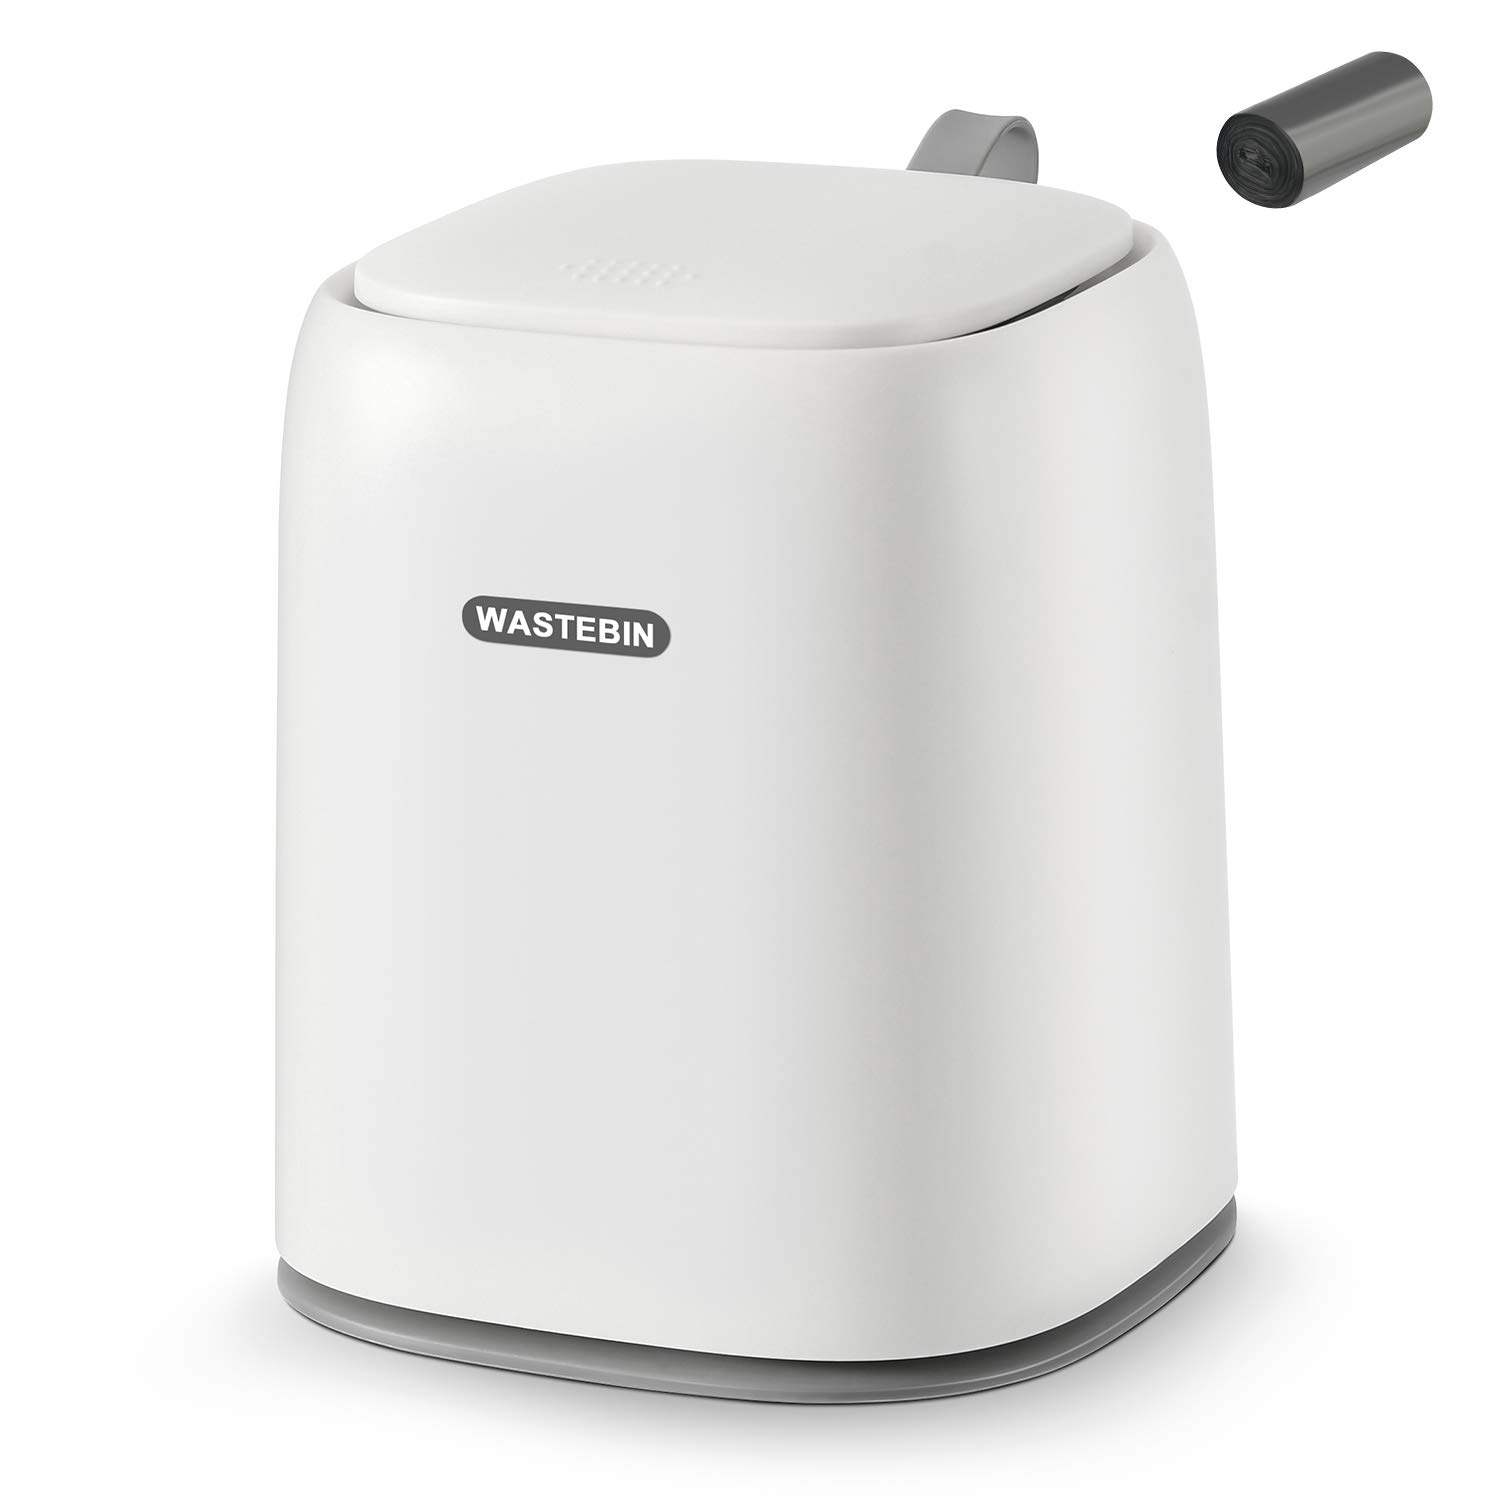 SUBEKYU 0.3 Gal Mini Desktop Trash Can with Lid for Office Countertop, Small Wastebasket for Coffee Table/Desk/Tabletop, Tiny Garbage Bin, Plastic, White